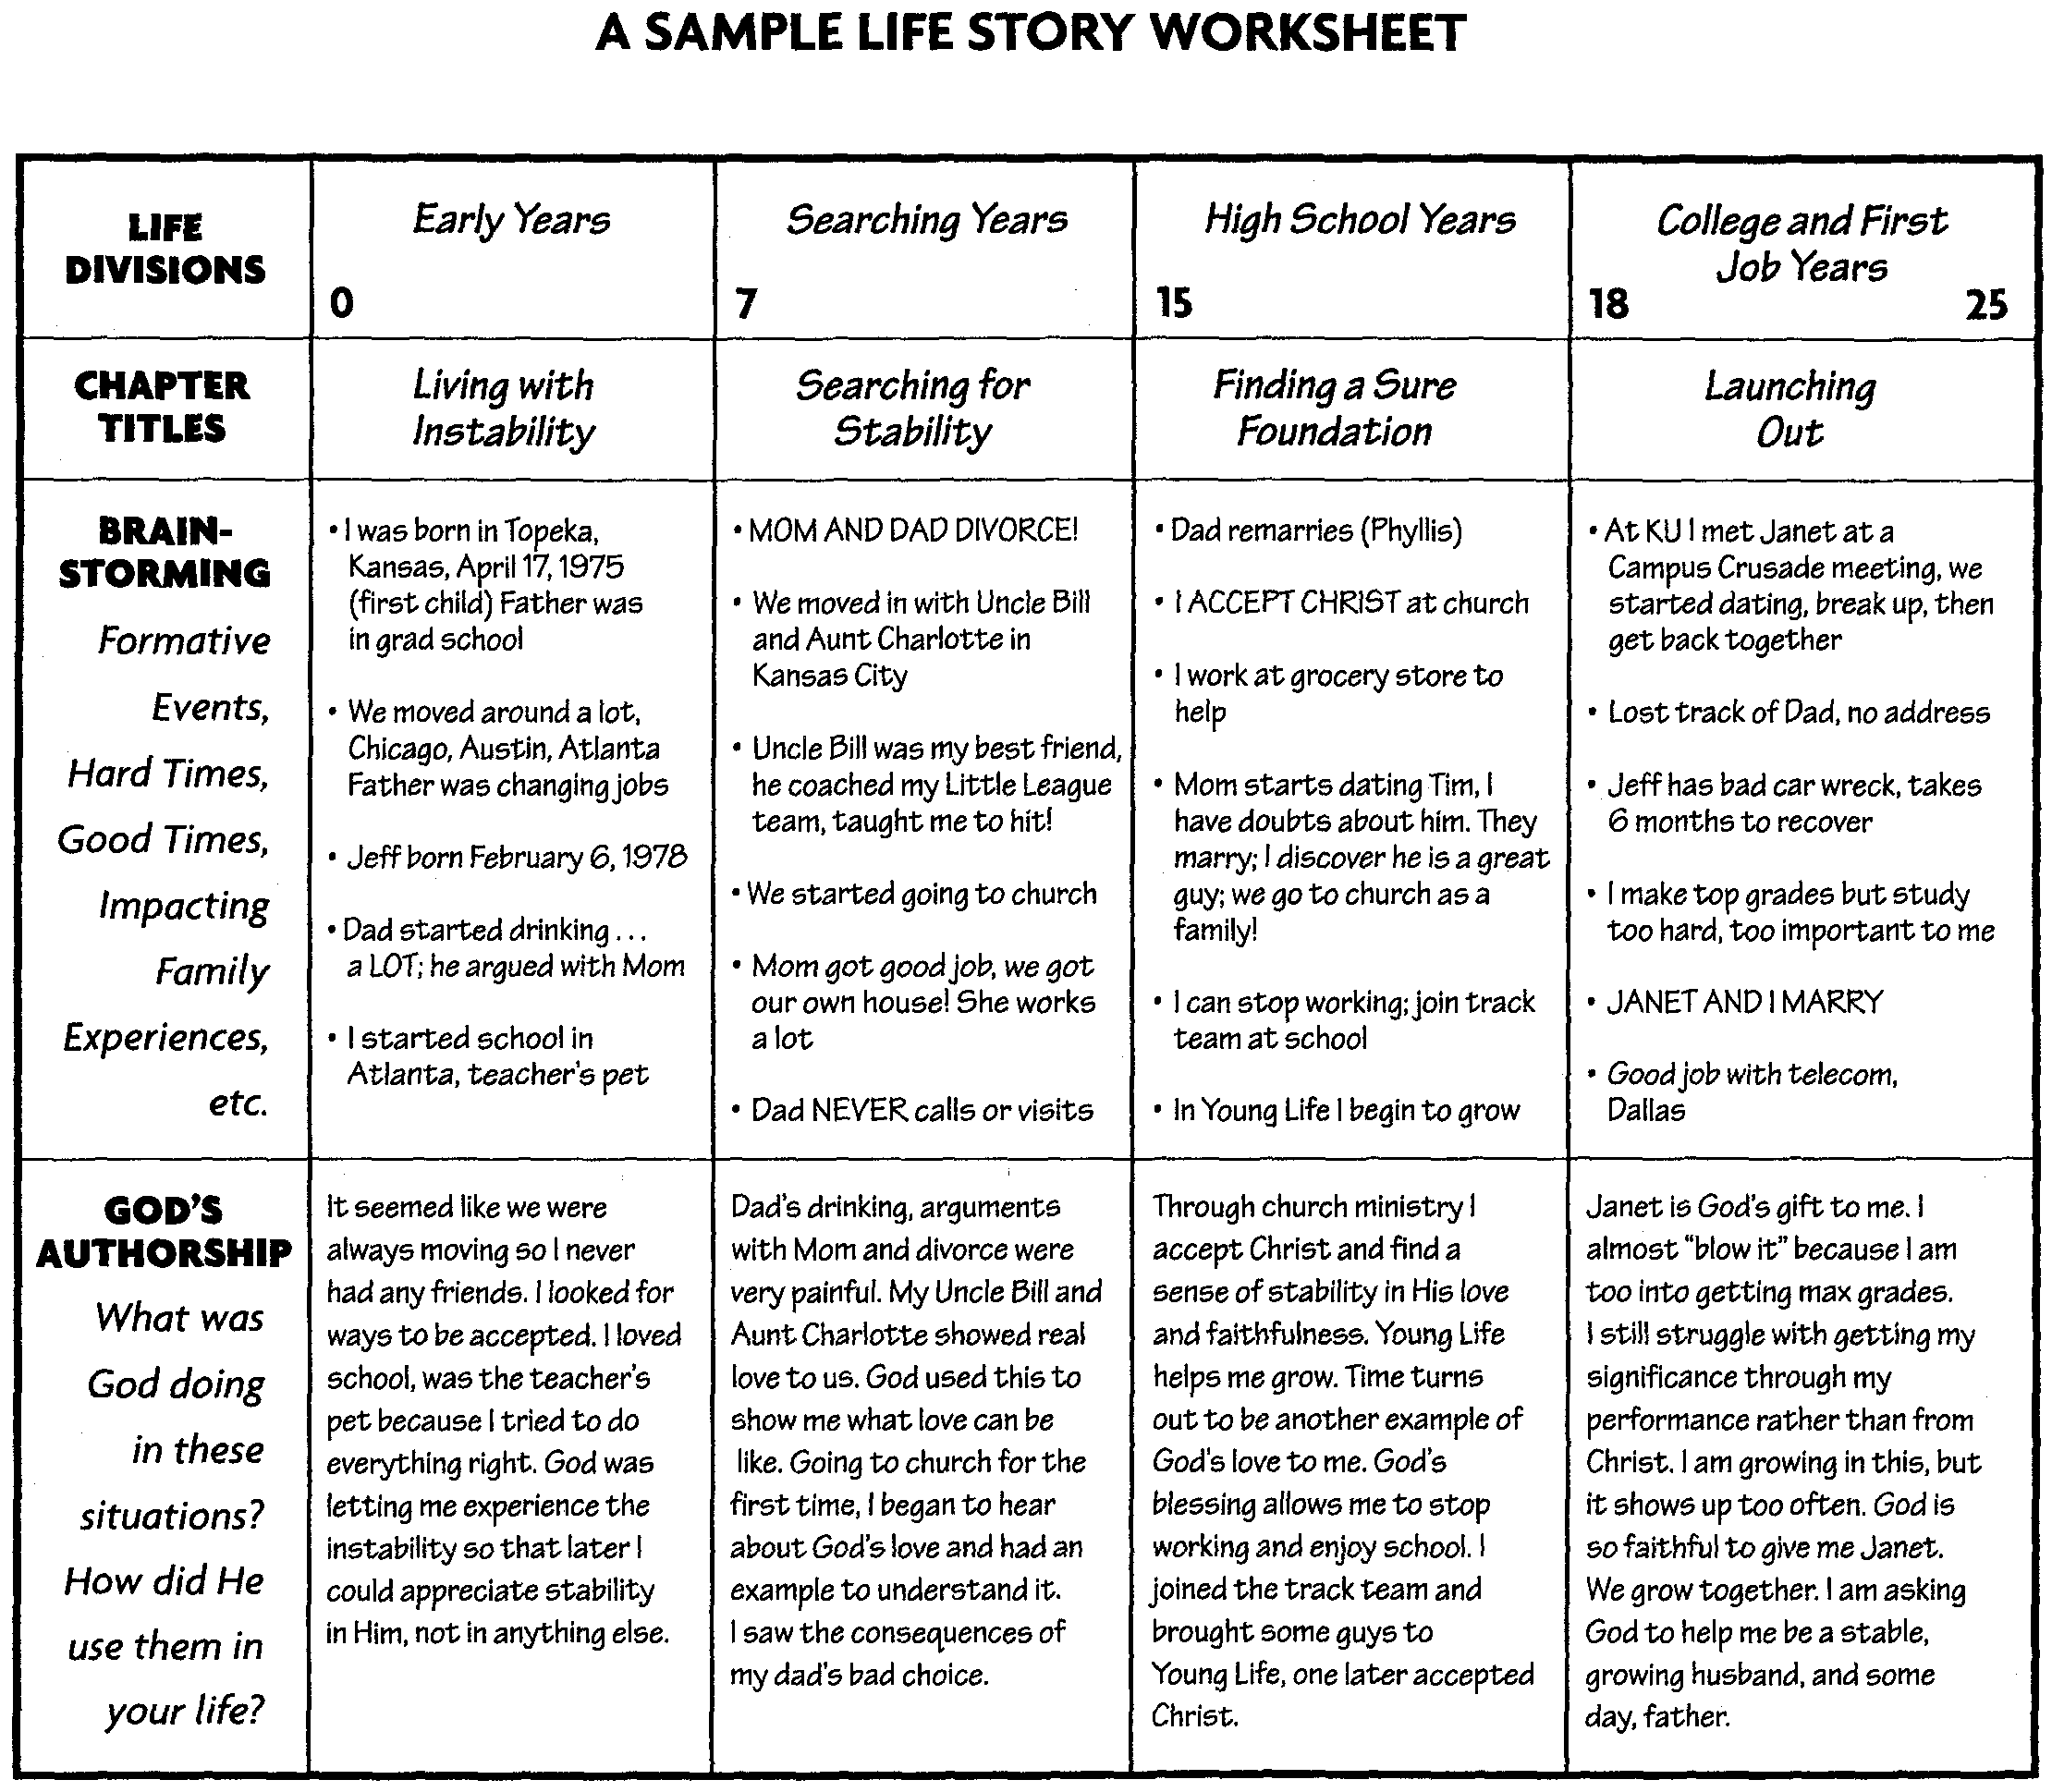 Worksheets Sermon Preparation Worksheet faith library download the life division worksheet a